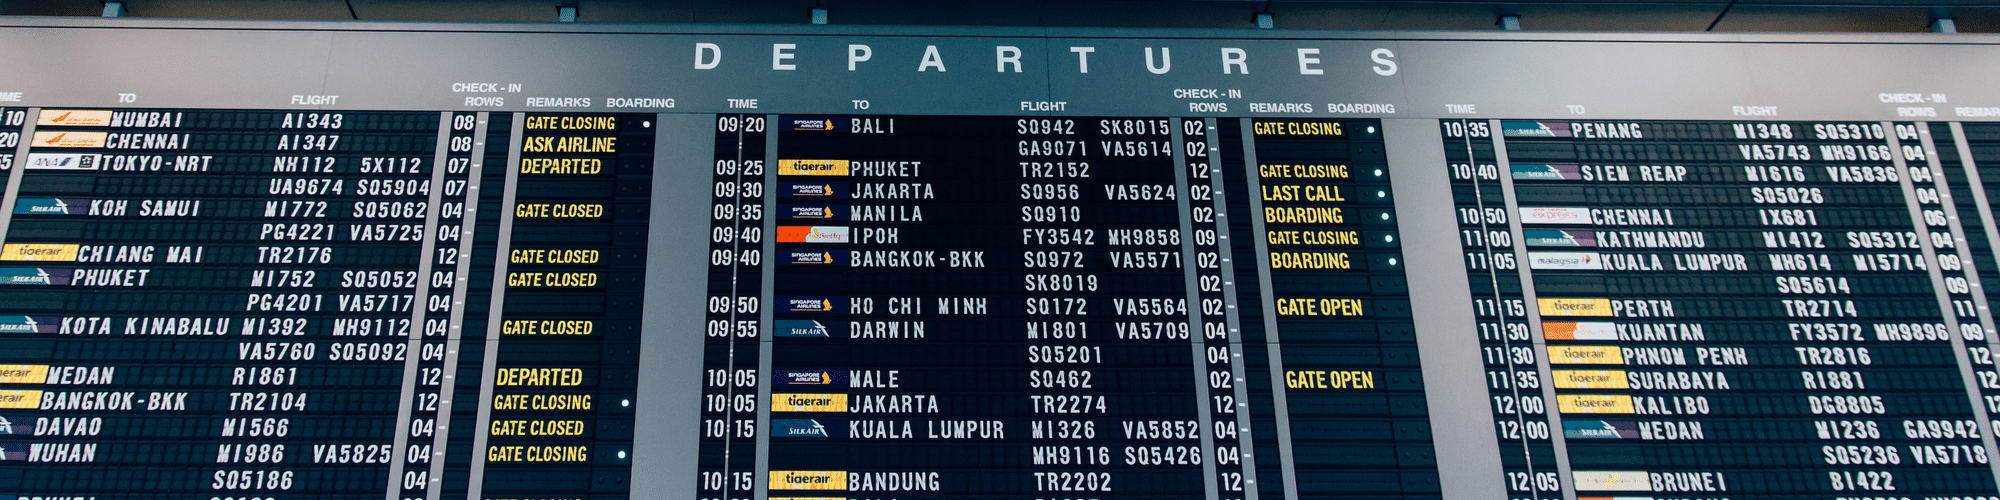 airport display of flights